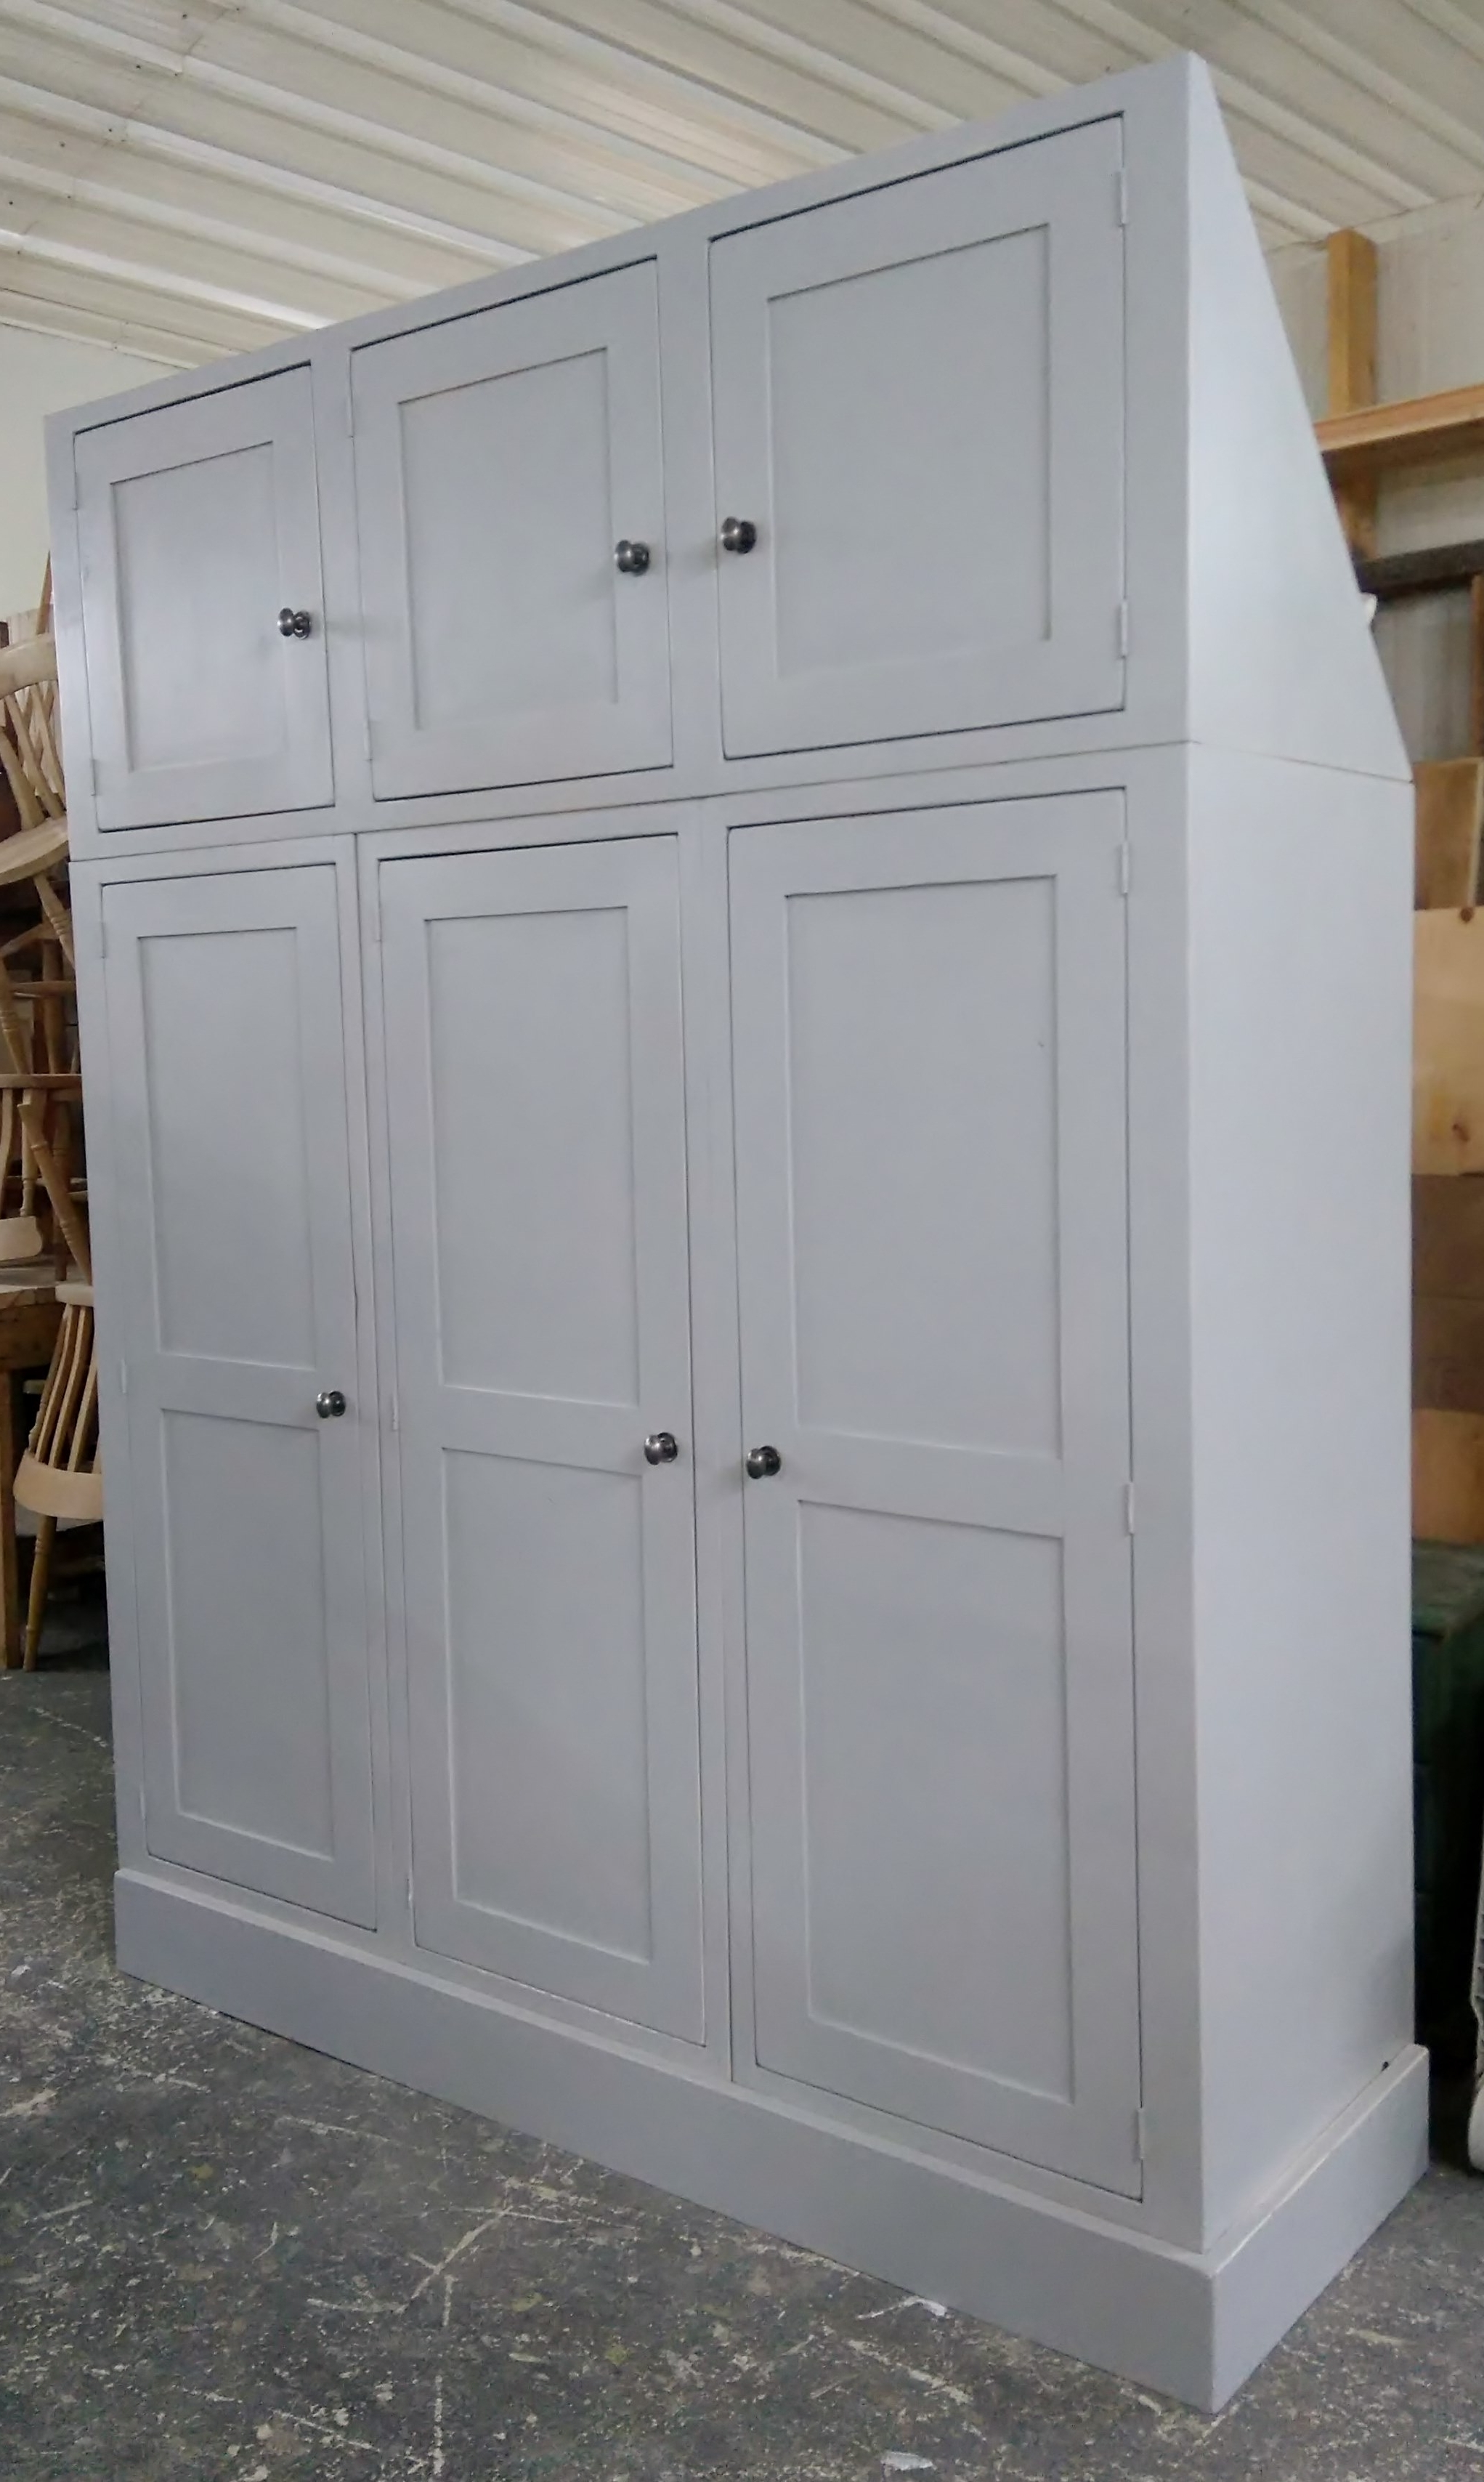 Farrow And Ball Painted Wardrobes Intended For Most Up To Date Bespoke Reclaimed Pine Triple Wardrobe With Top Cupboards For (View 2 of 15)